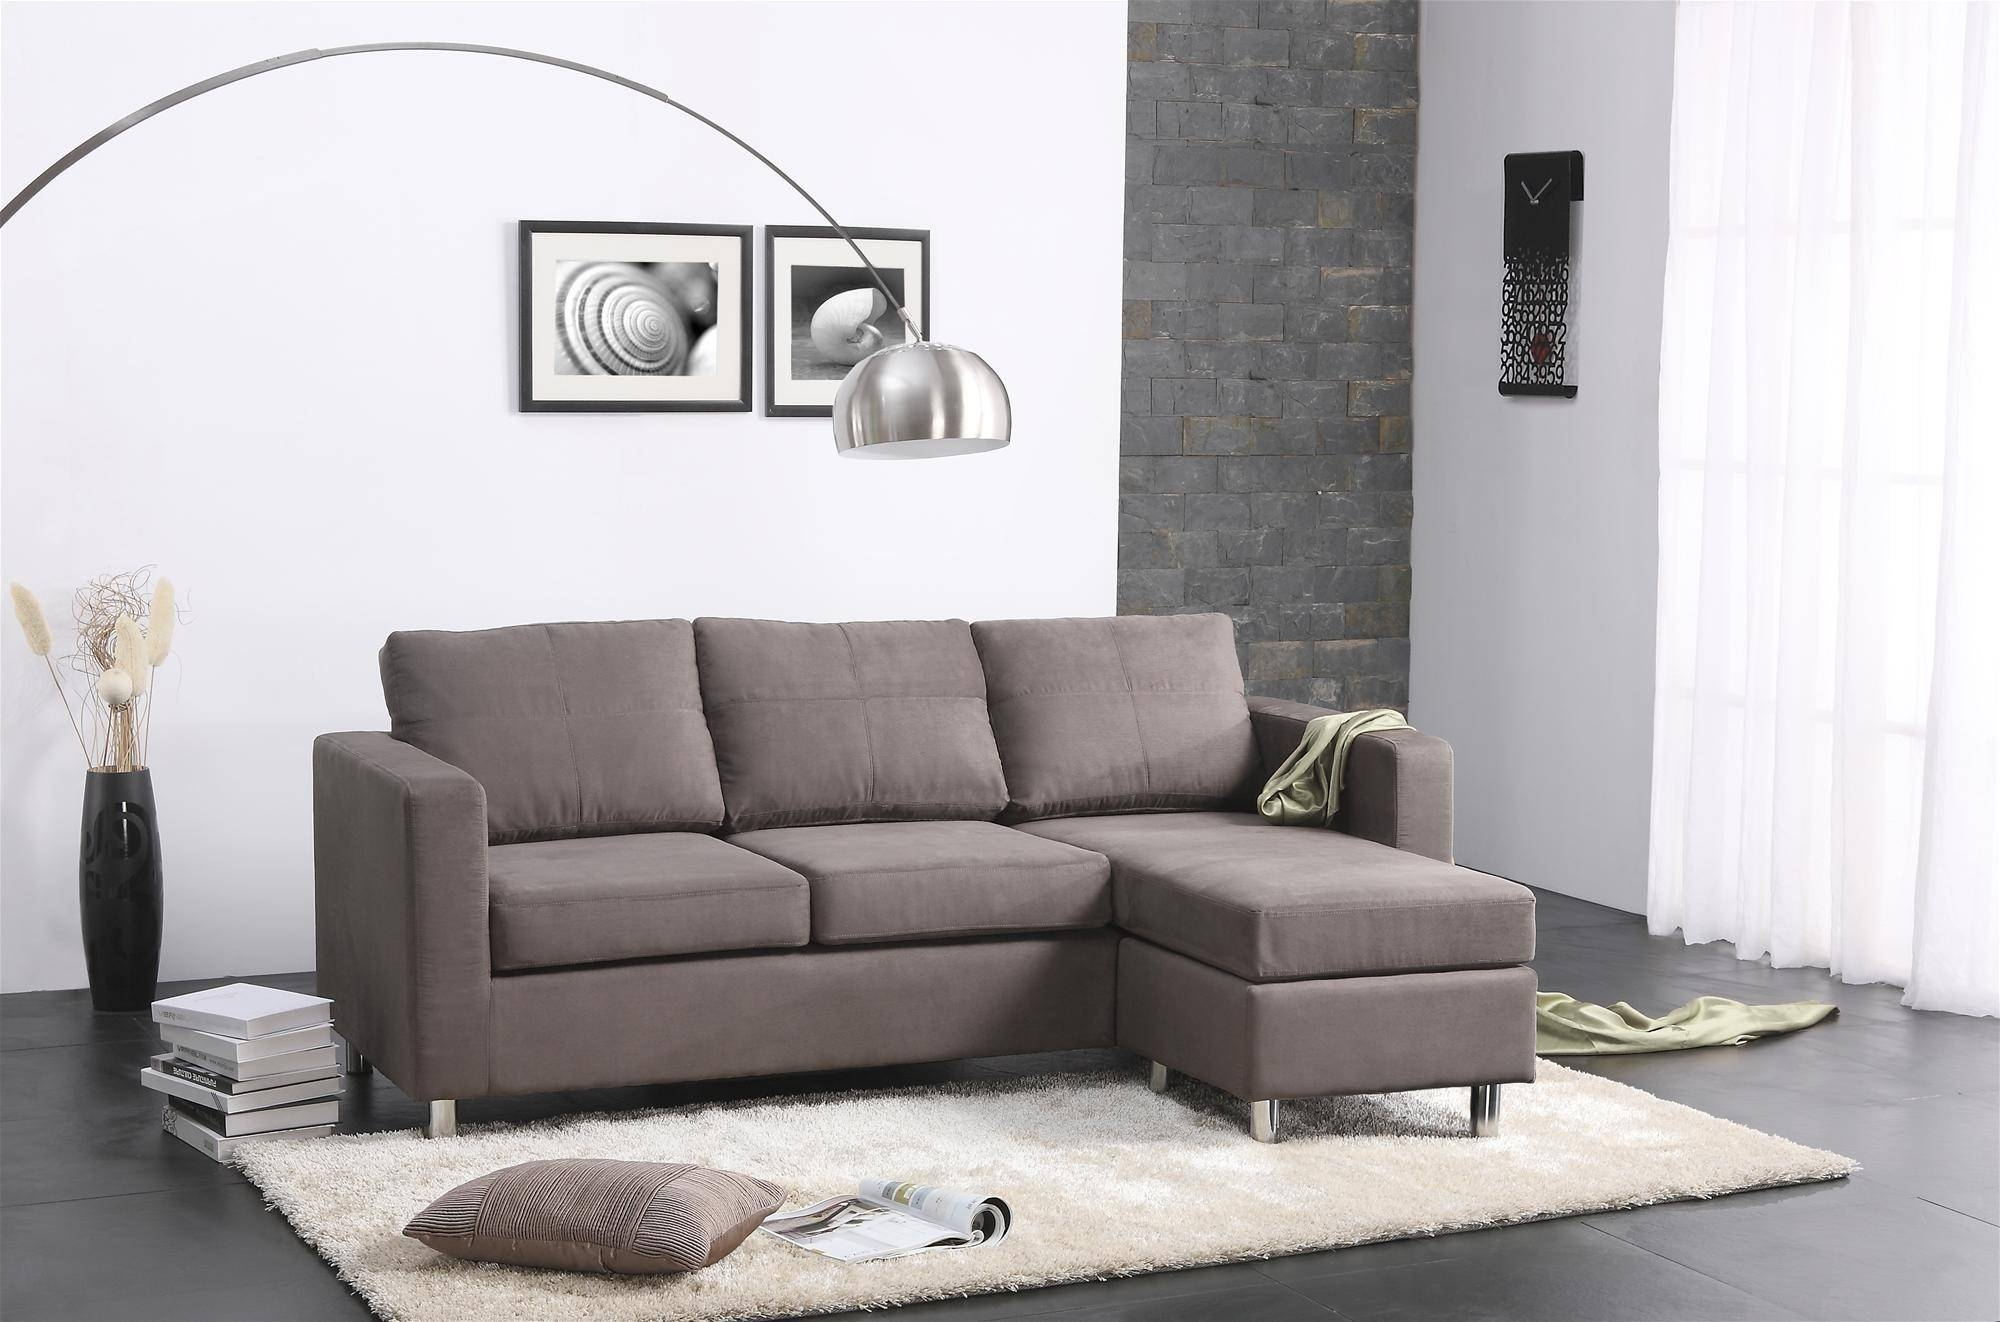 Popular High Quality Sectional Sofas 85 With Additional Abbyson within Abbyson Living Charlotte Dark Brown Sectional Sofa and Ottoman (Image 19 of 30)